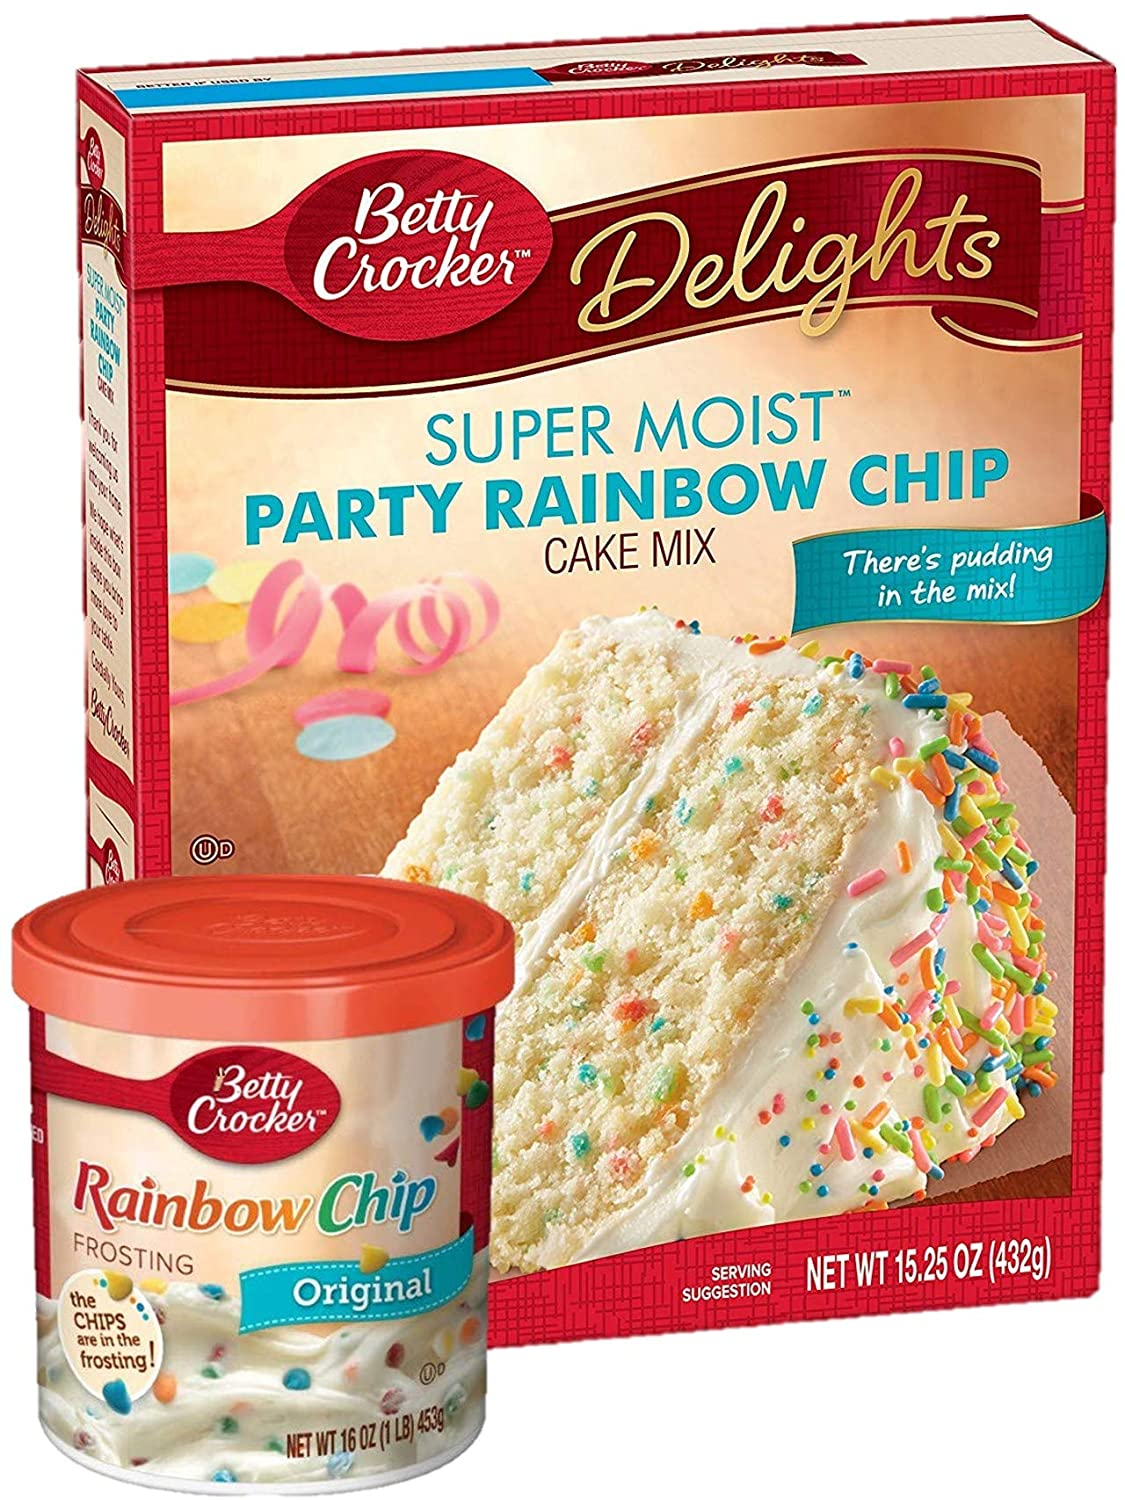 Betty Crocker Party Rainbow Chip Cake Mix and Rainbow Chip Frosting Bundle (2 Items)